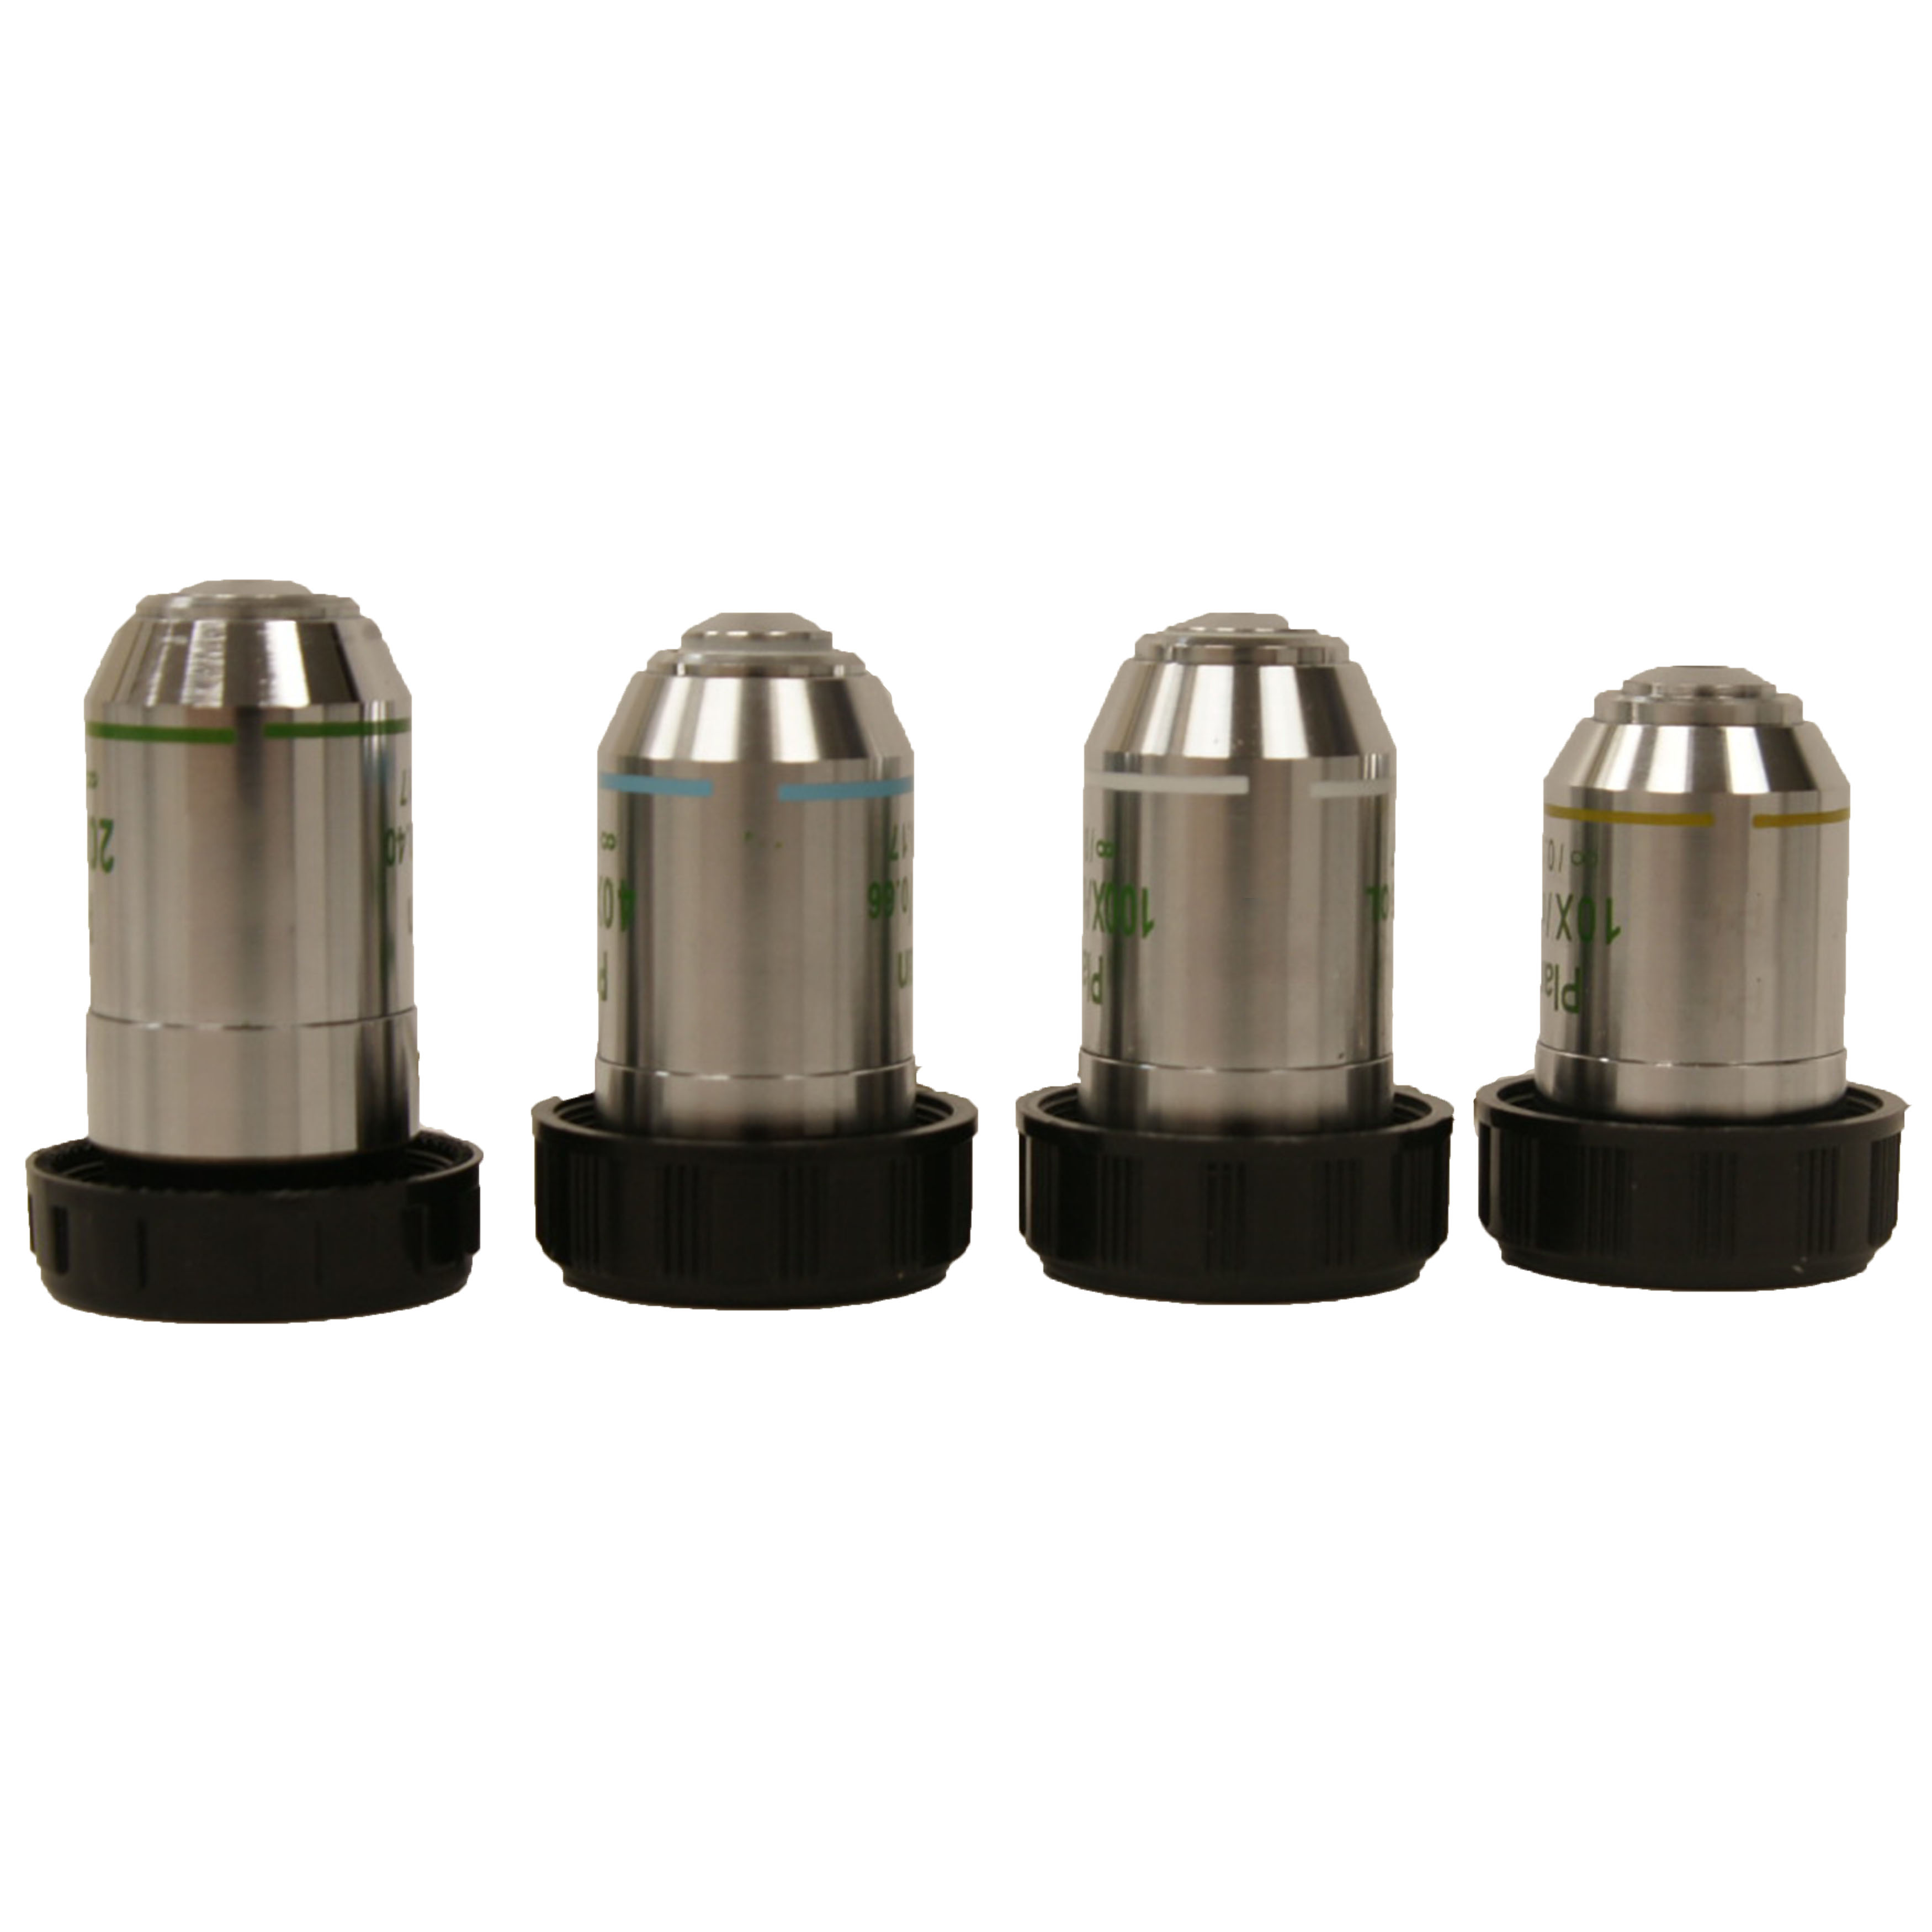 Compound Scope Assorted Objective Lenses